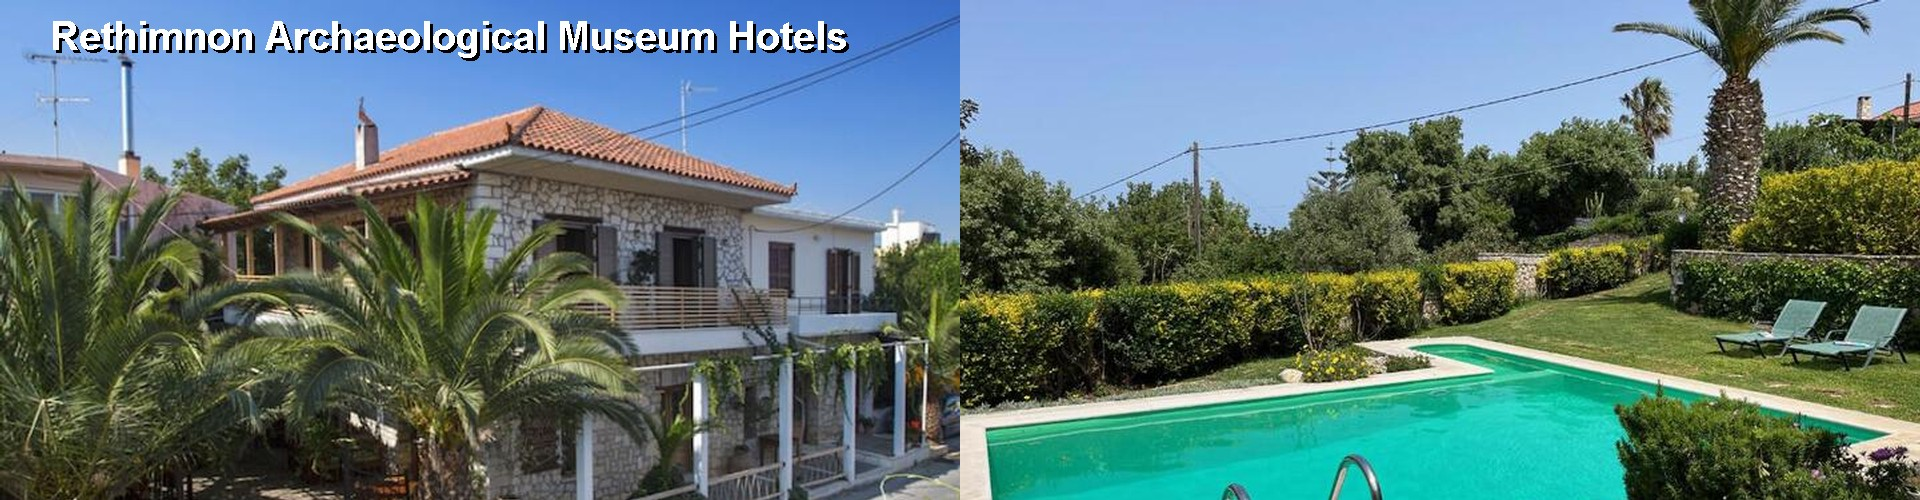 5 Best Hotels near Rethimnon Archaeological Museum